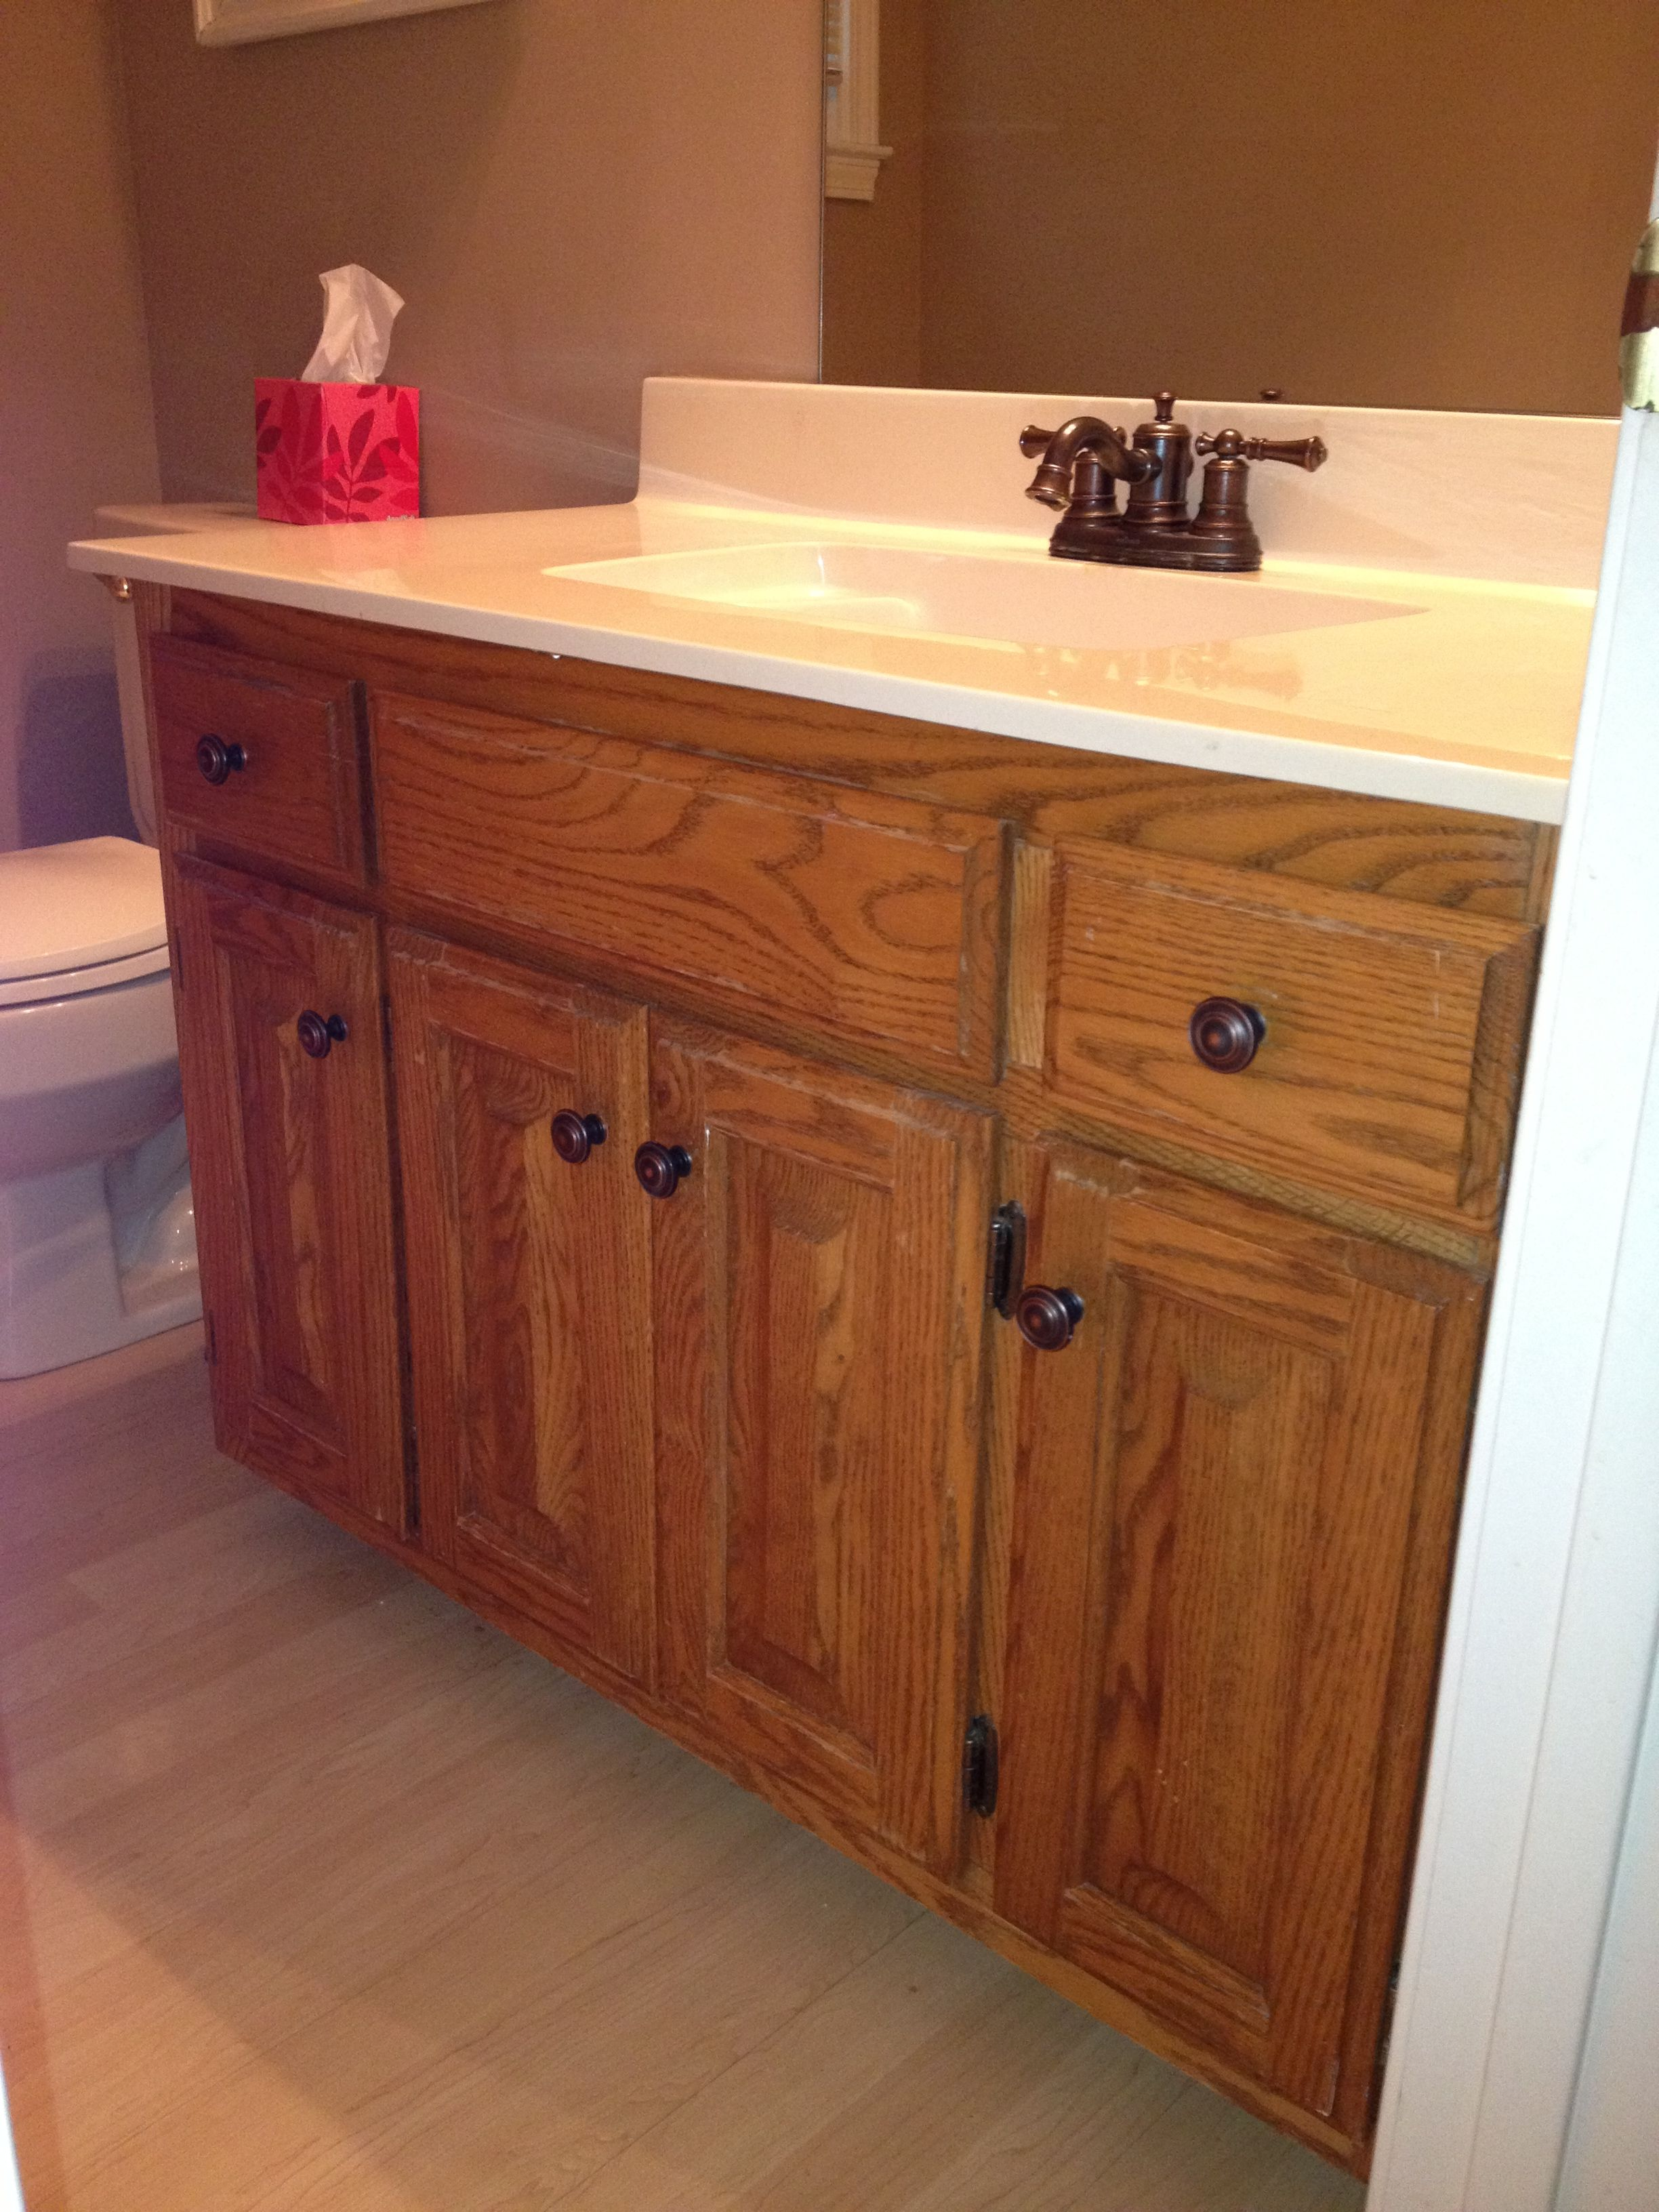 My Bathroom With 80 S Honey Oak Cabinets Before Update With Annie Sloan Chalk Paint Beautiful Bathroom Cabinets Brown Bathroom Decor Oak Cabinets